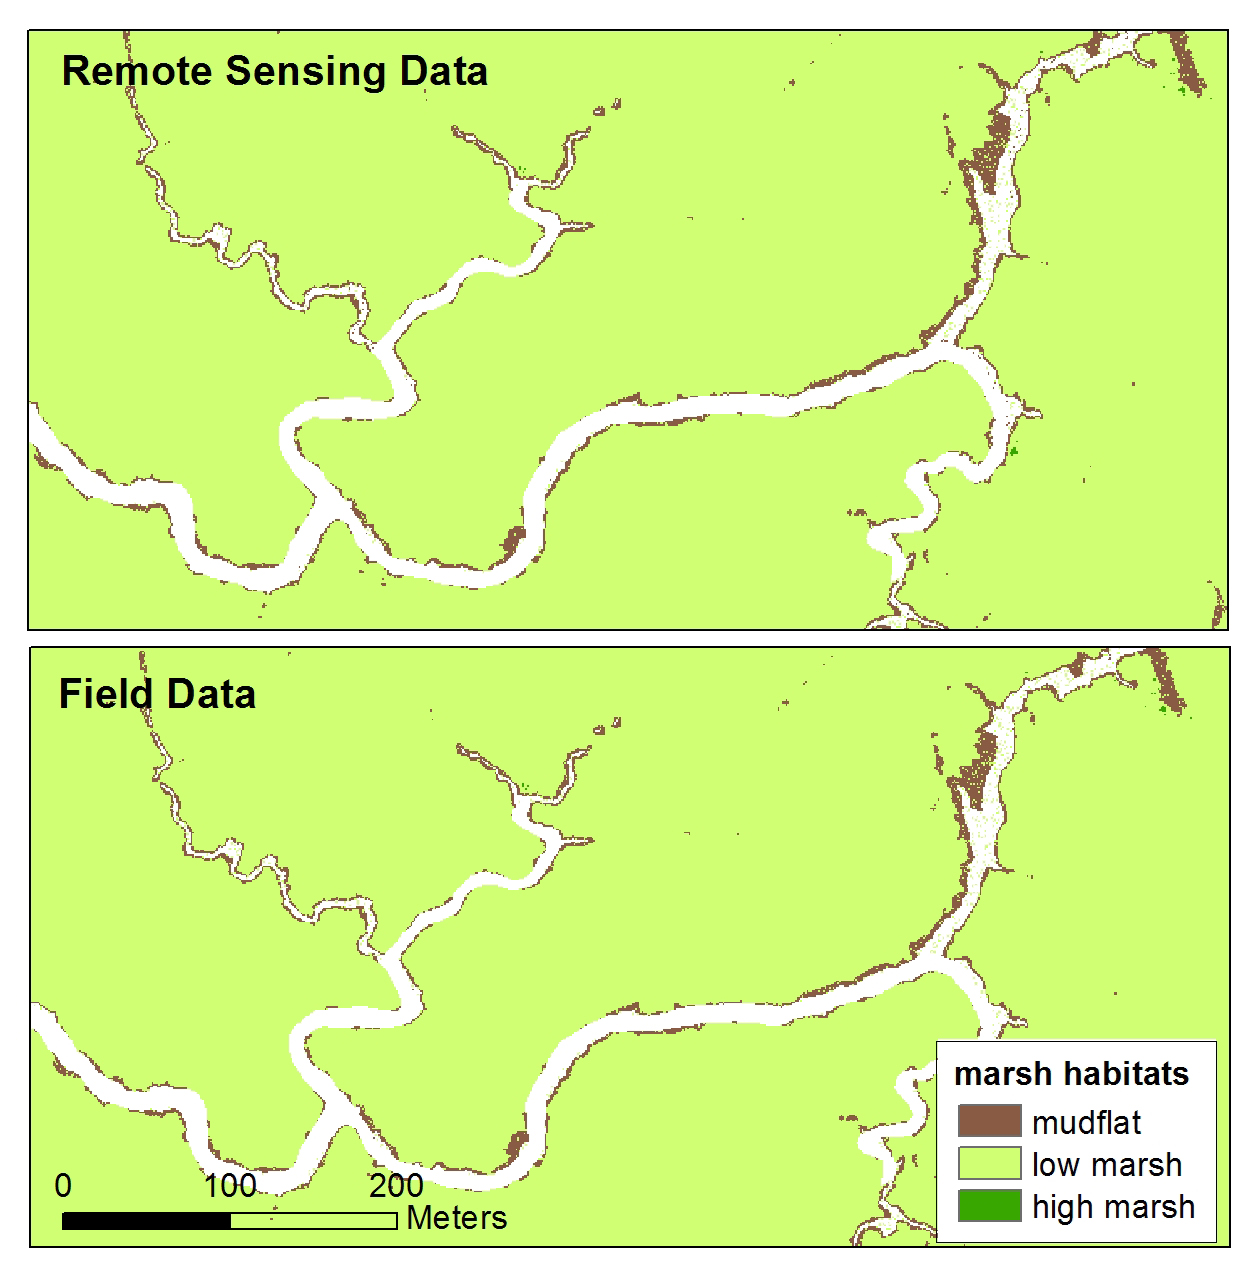 "Projected vegetation community maps at year 2100 for Rush Ranch, Suisun Marsh, California, based on Marsh Equilibrium Model (MEM) outputs and a lidar digital elevation model (DEM). The top map was generated with inputs derived from Landsat 8 to MEM, and the bottom map was generated with field data inputs to MEM. Comparison of Landsat 8 and field-based MEM inputs found no significant difference in projections across 95% of the marsh plain area at 100 years, with both projections illustrating a subtle ""sinking"" of the marsh. North is oriented toward the top of the image."